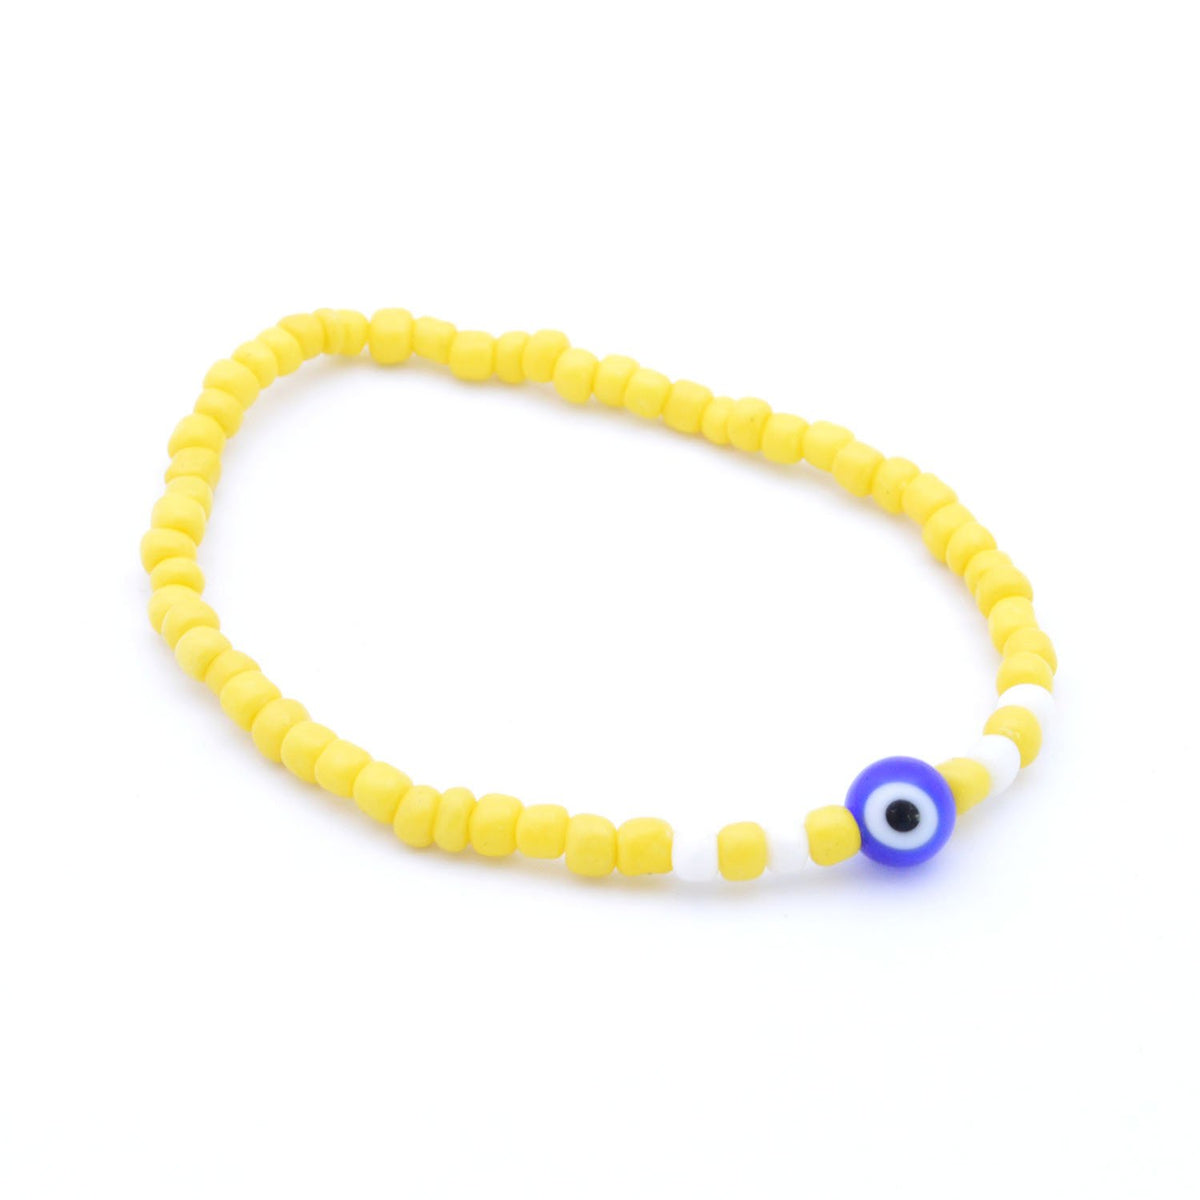 Blue Evil Eye Accessories Yellow Beads Bracelet, Bracelets - JewelHub jewelry